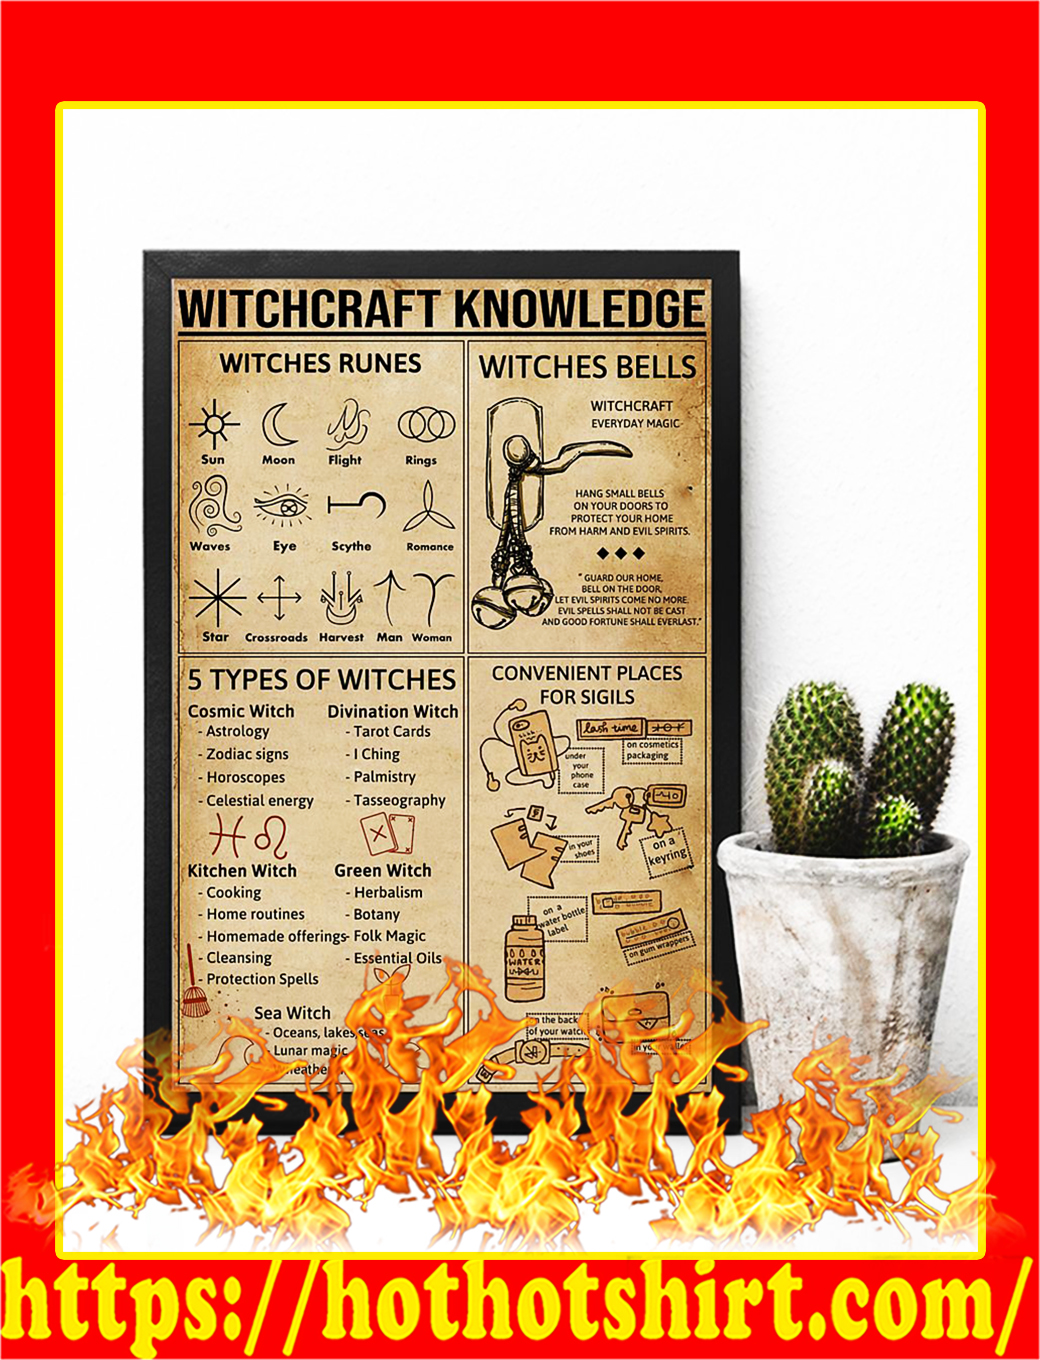 Witchcraft Knowledge Poster- A2